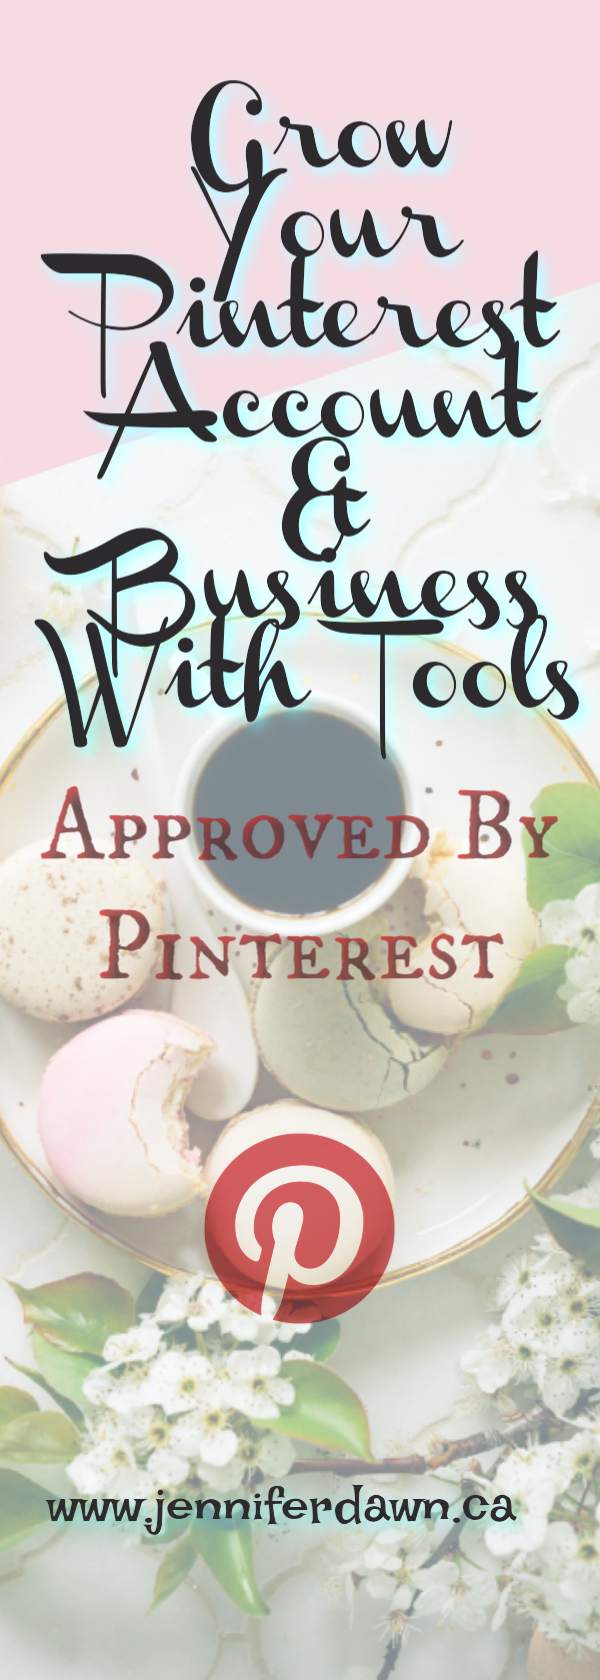 Learn how you can grow your Pinterest Account and Business with tools that are actually approved by Pinterest #marketingtips #entrepreneur #PinterestMarketing How To Grow Your Pinterest Account // Pinterest Marketing Tips // Pinterest Approved Tools // Grow Your Business